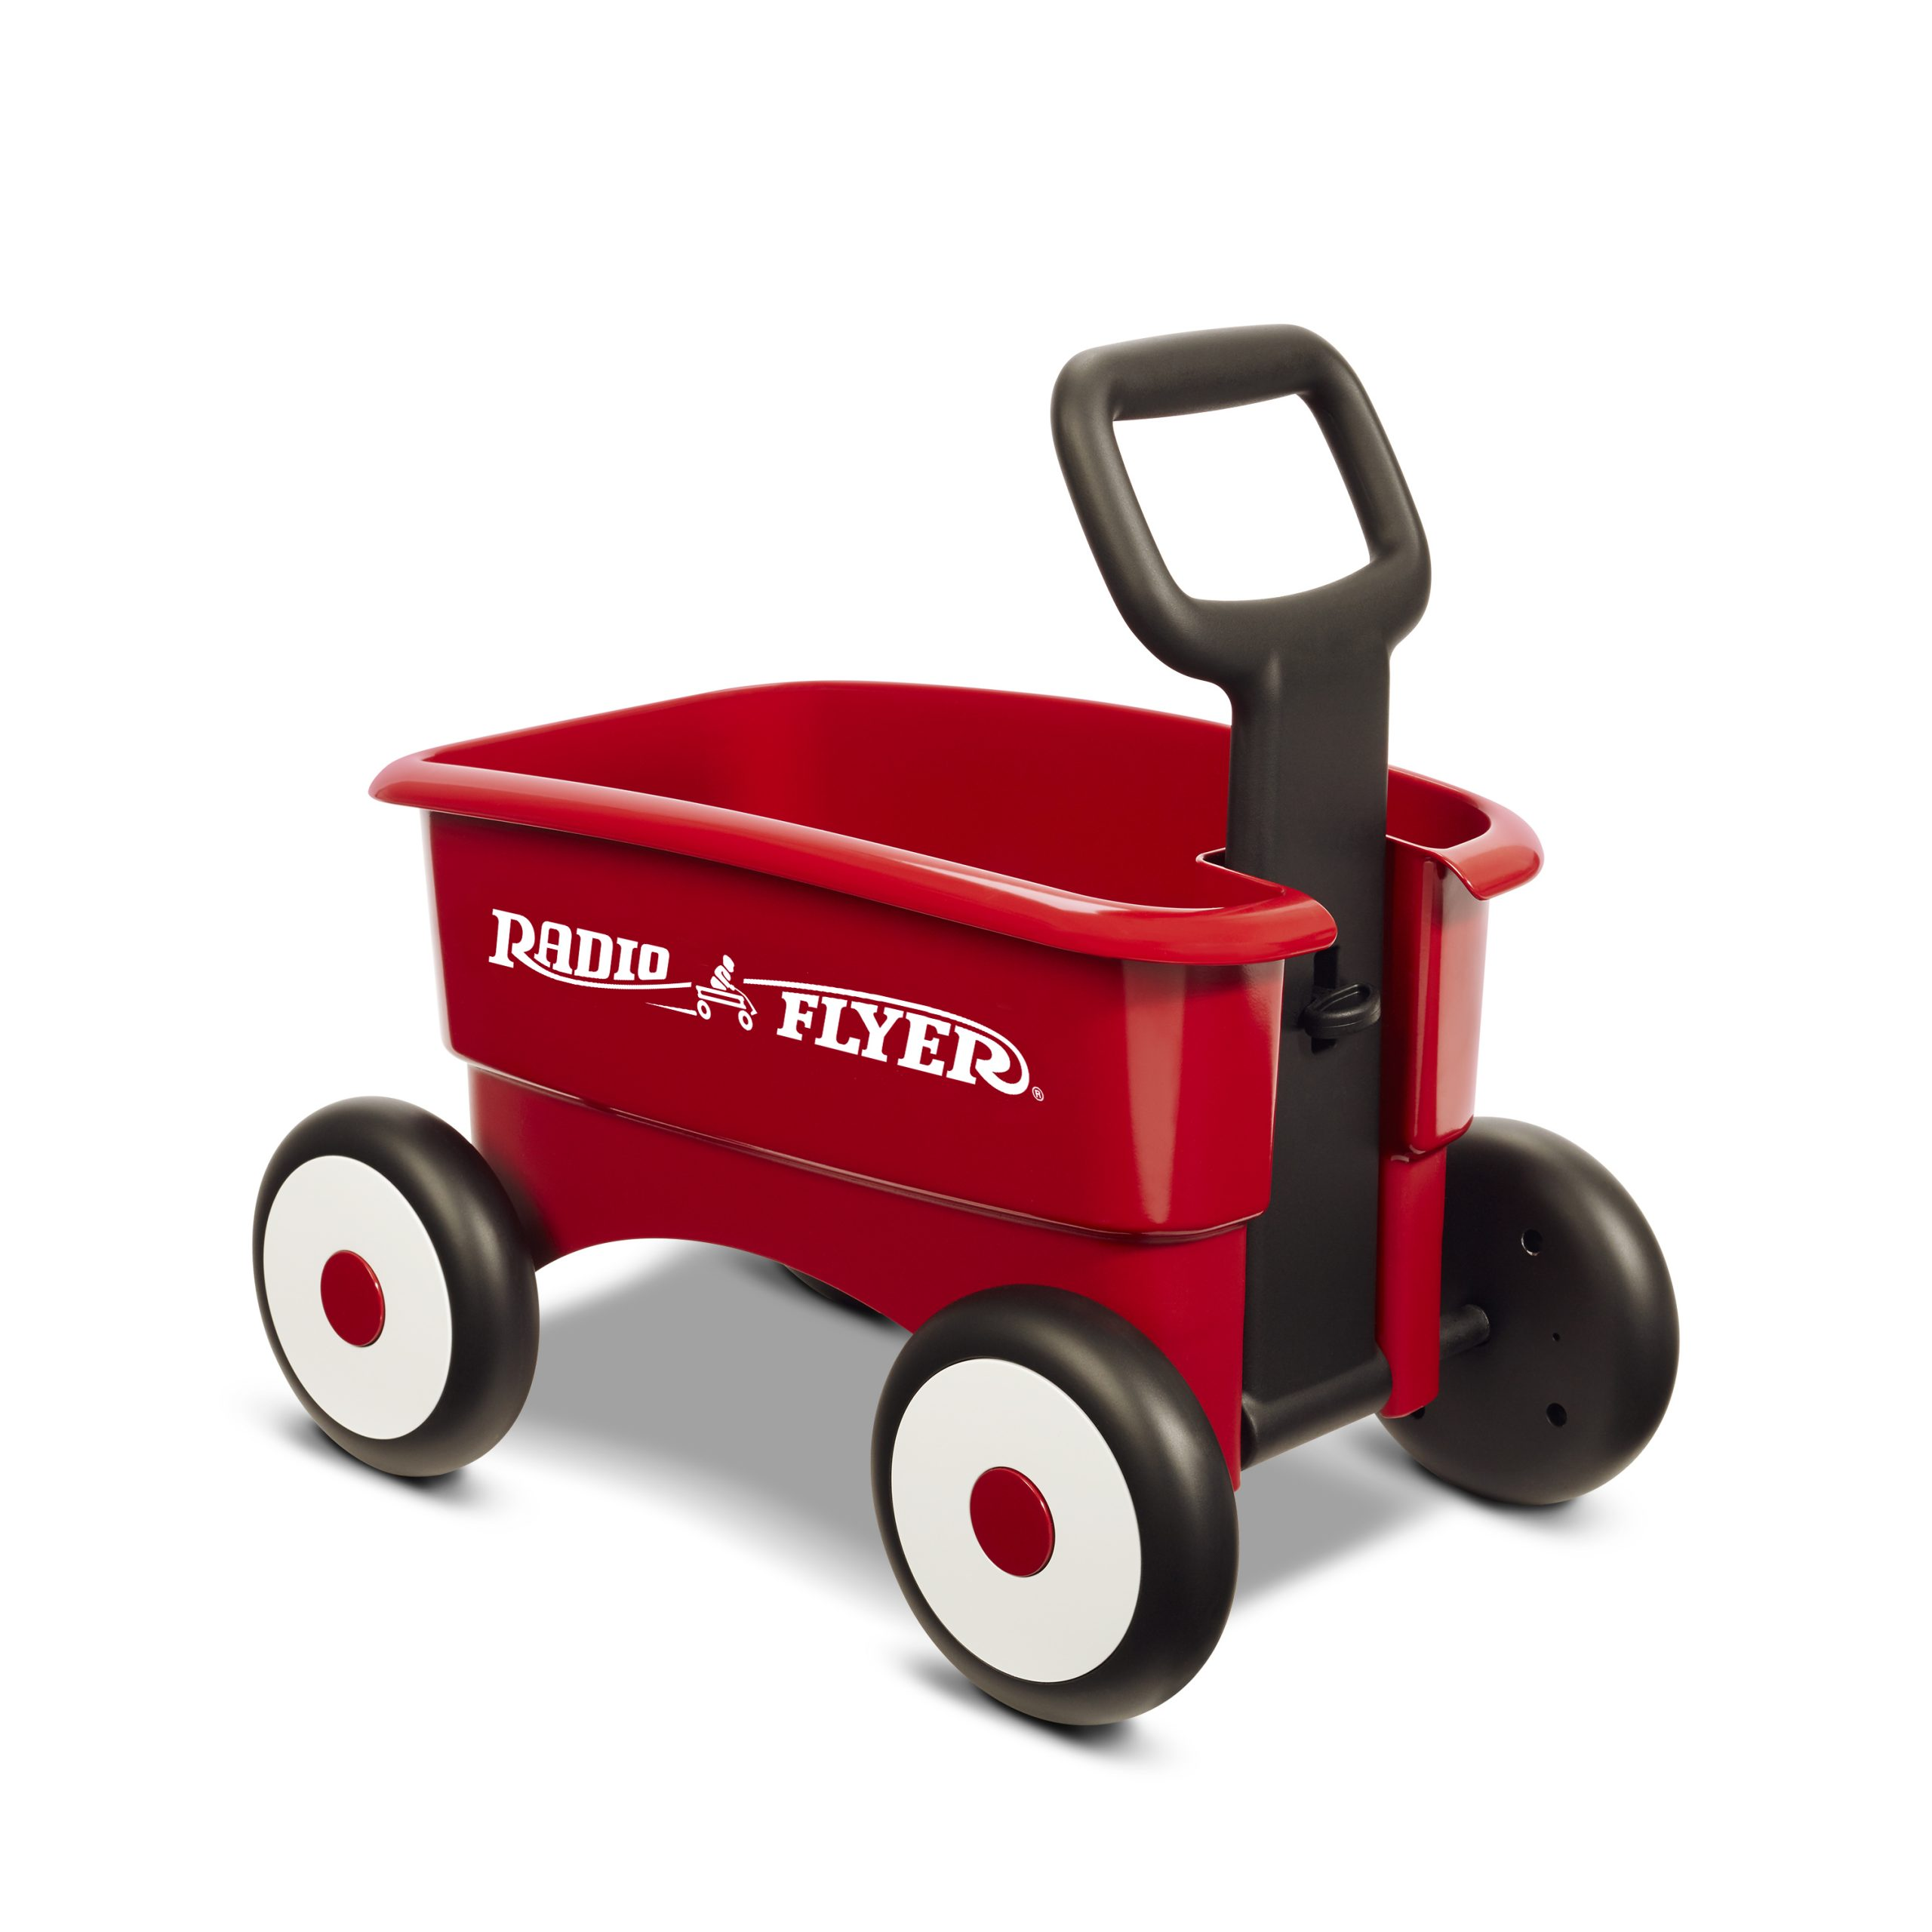 Radio Flyer, My 1st 2-in-1 Play Wagon Push Walker Only $19.97 (Reg $24.94) + Free Store Pickup at Walmart.com!